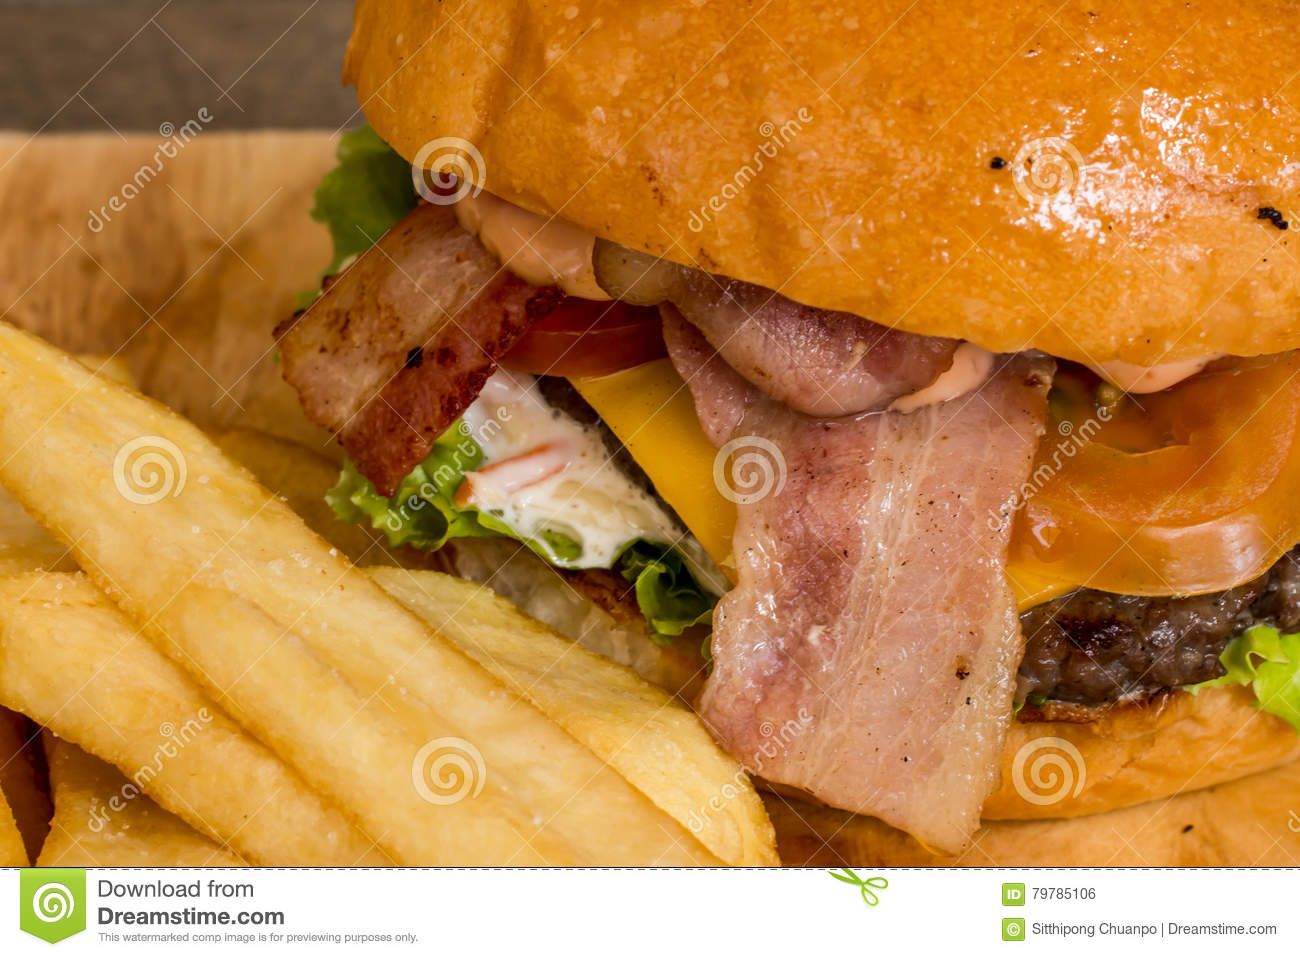 Hamburgers and French fries on the wood.